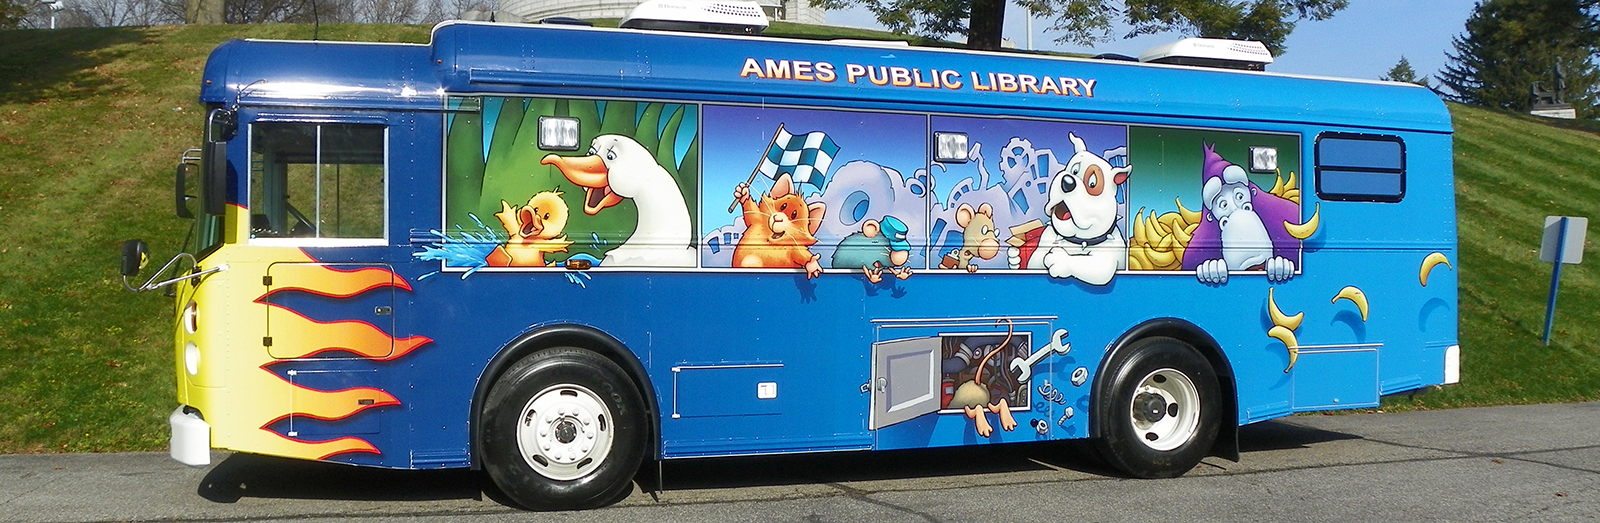 Bookmobile parked on sunny day